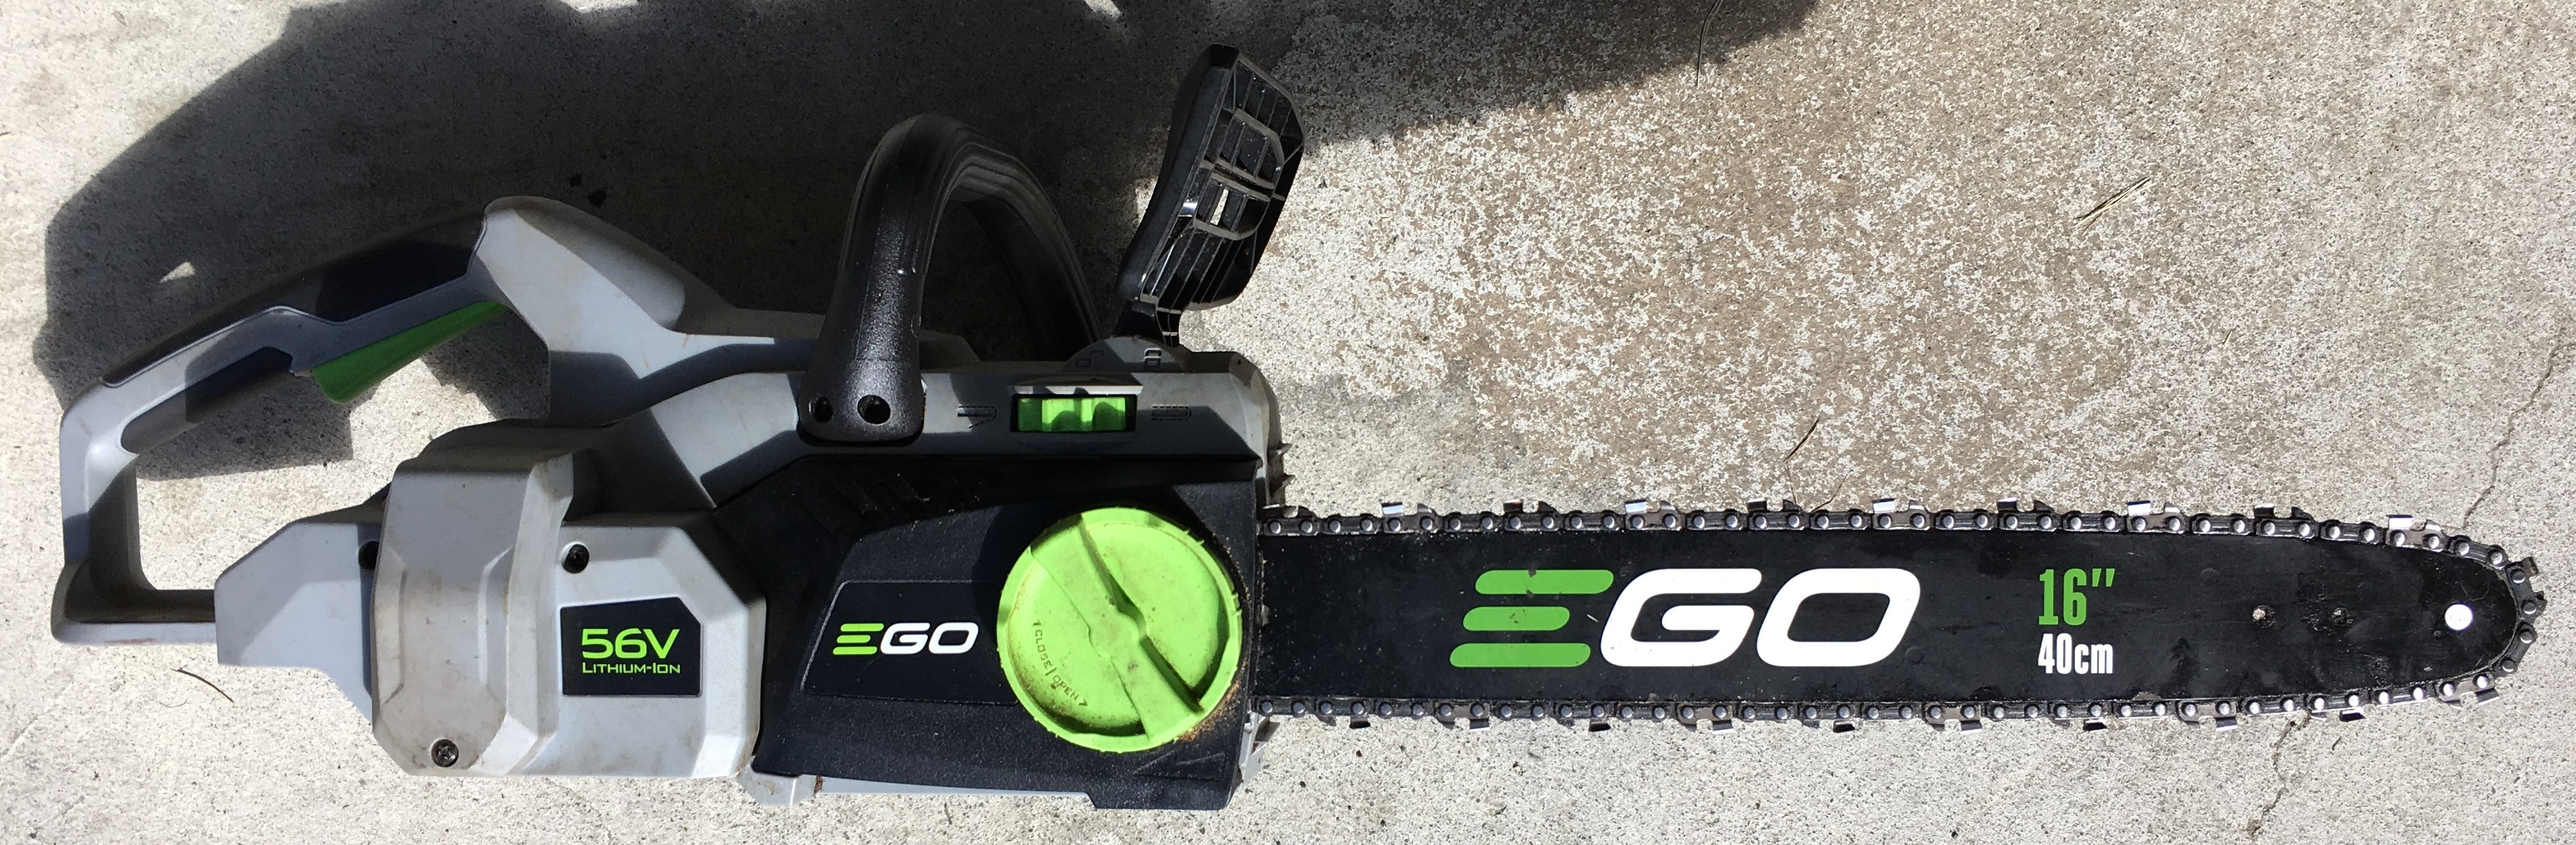 Ego Chainsaw Review